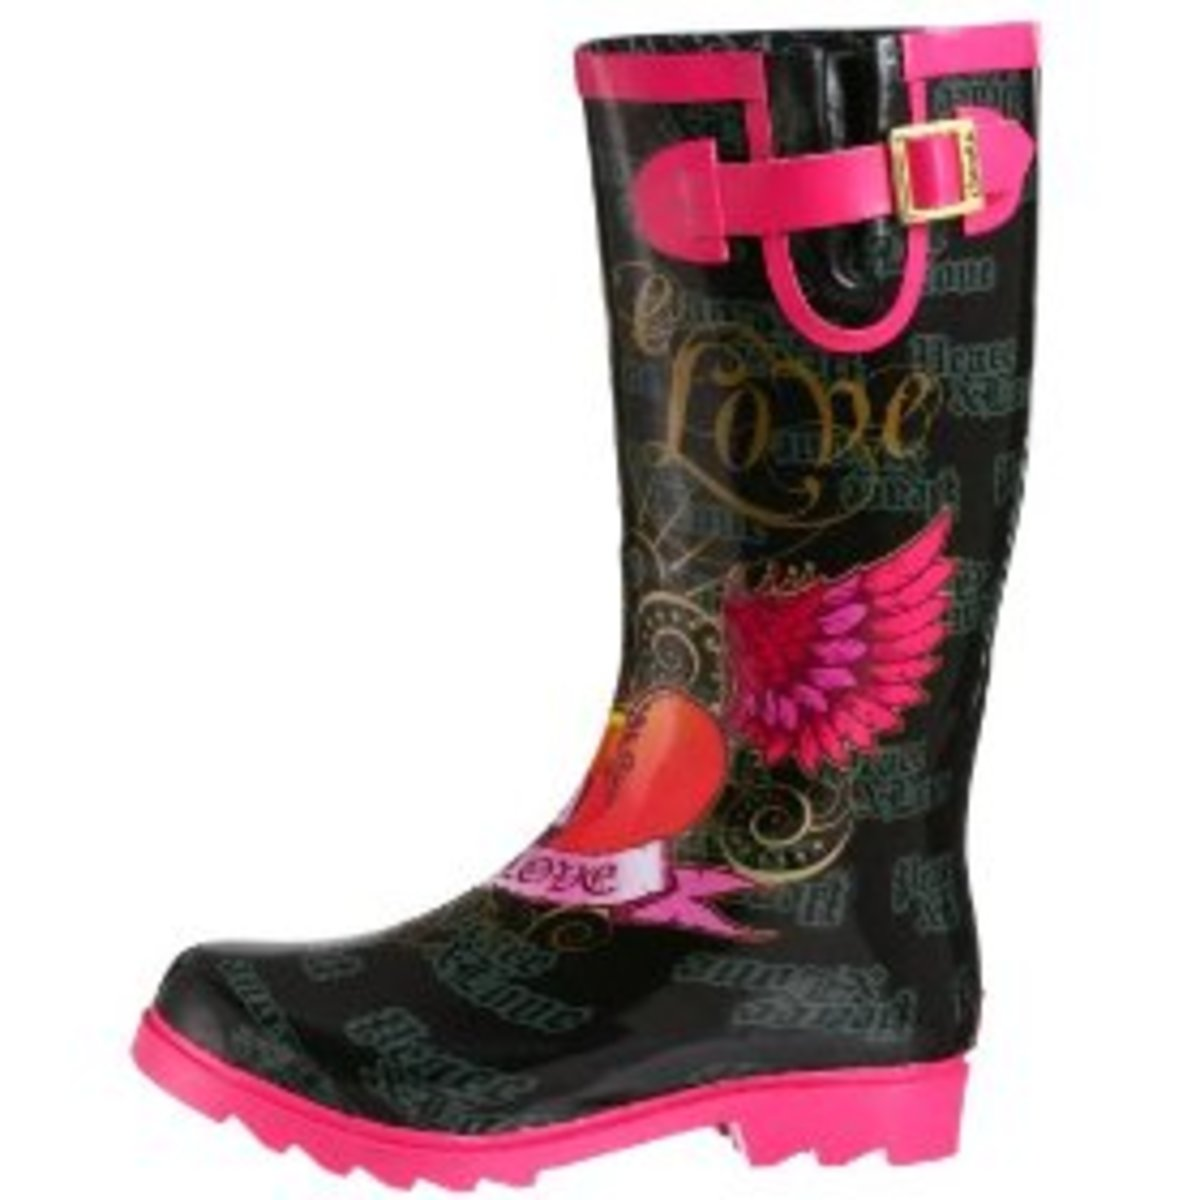 Peace and Love Chooka rain boots